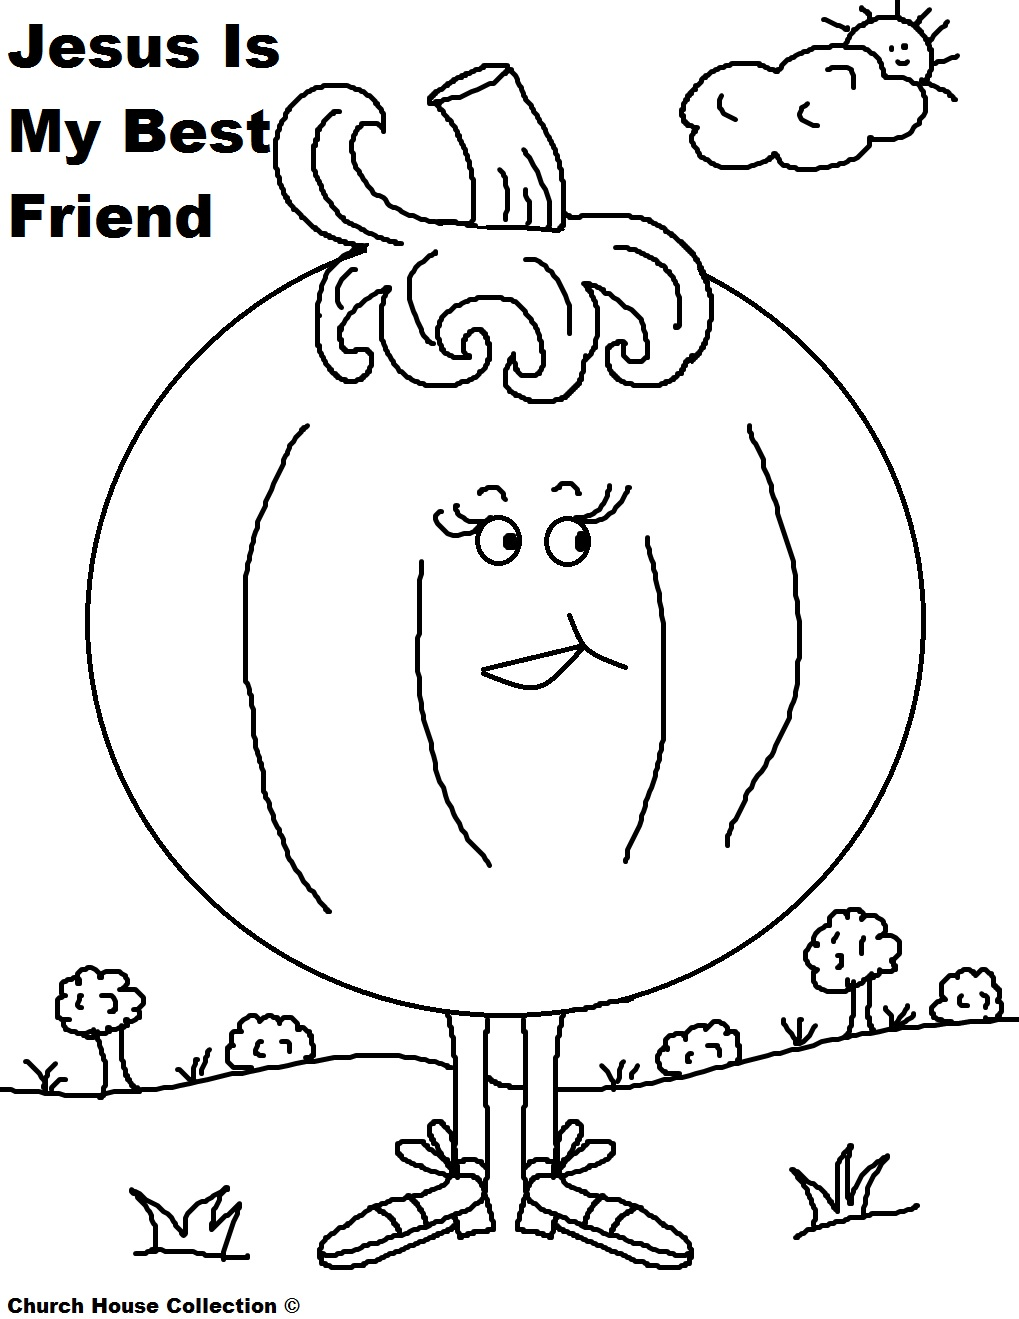 free printable pumpkin coloring pages for sunday school childrens church or at home with and without words jesus is my best friend